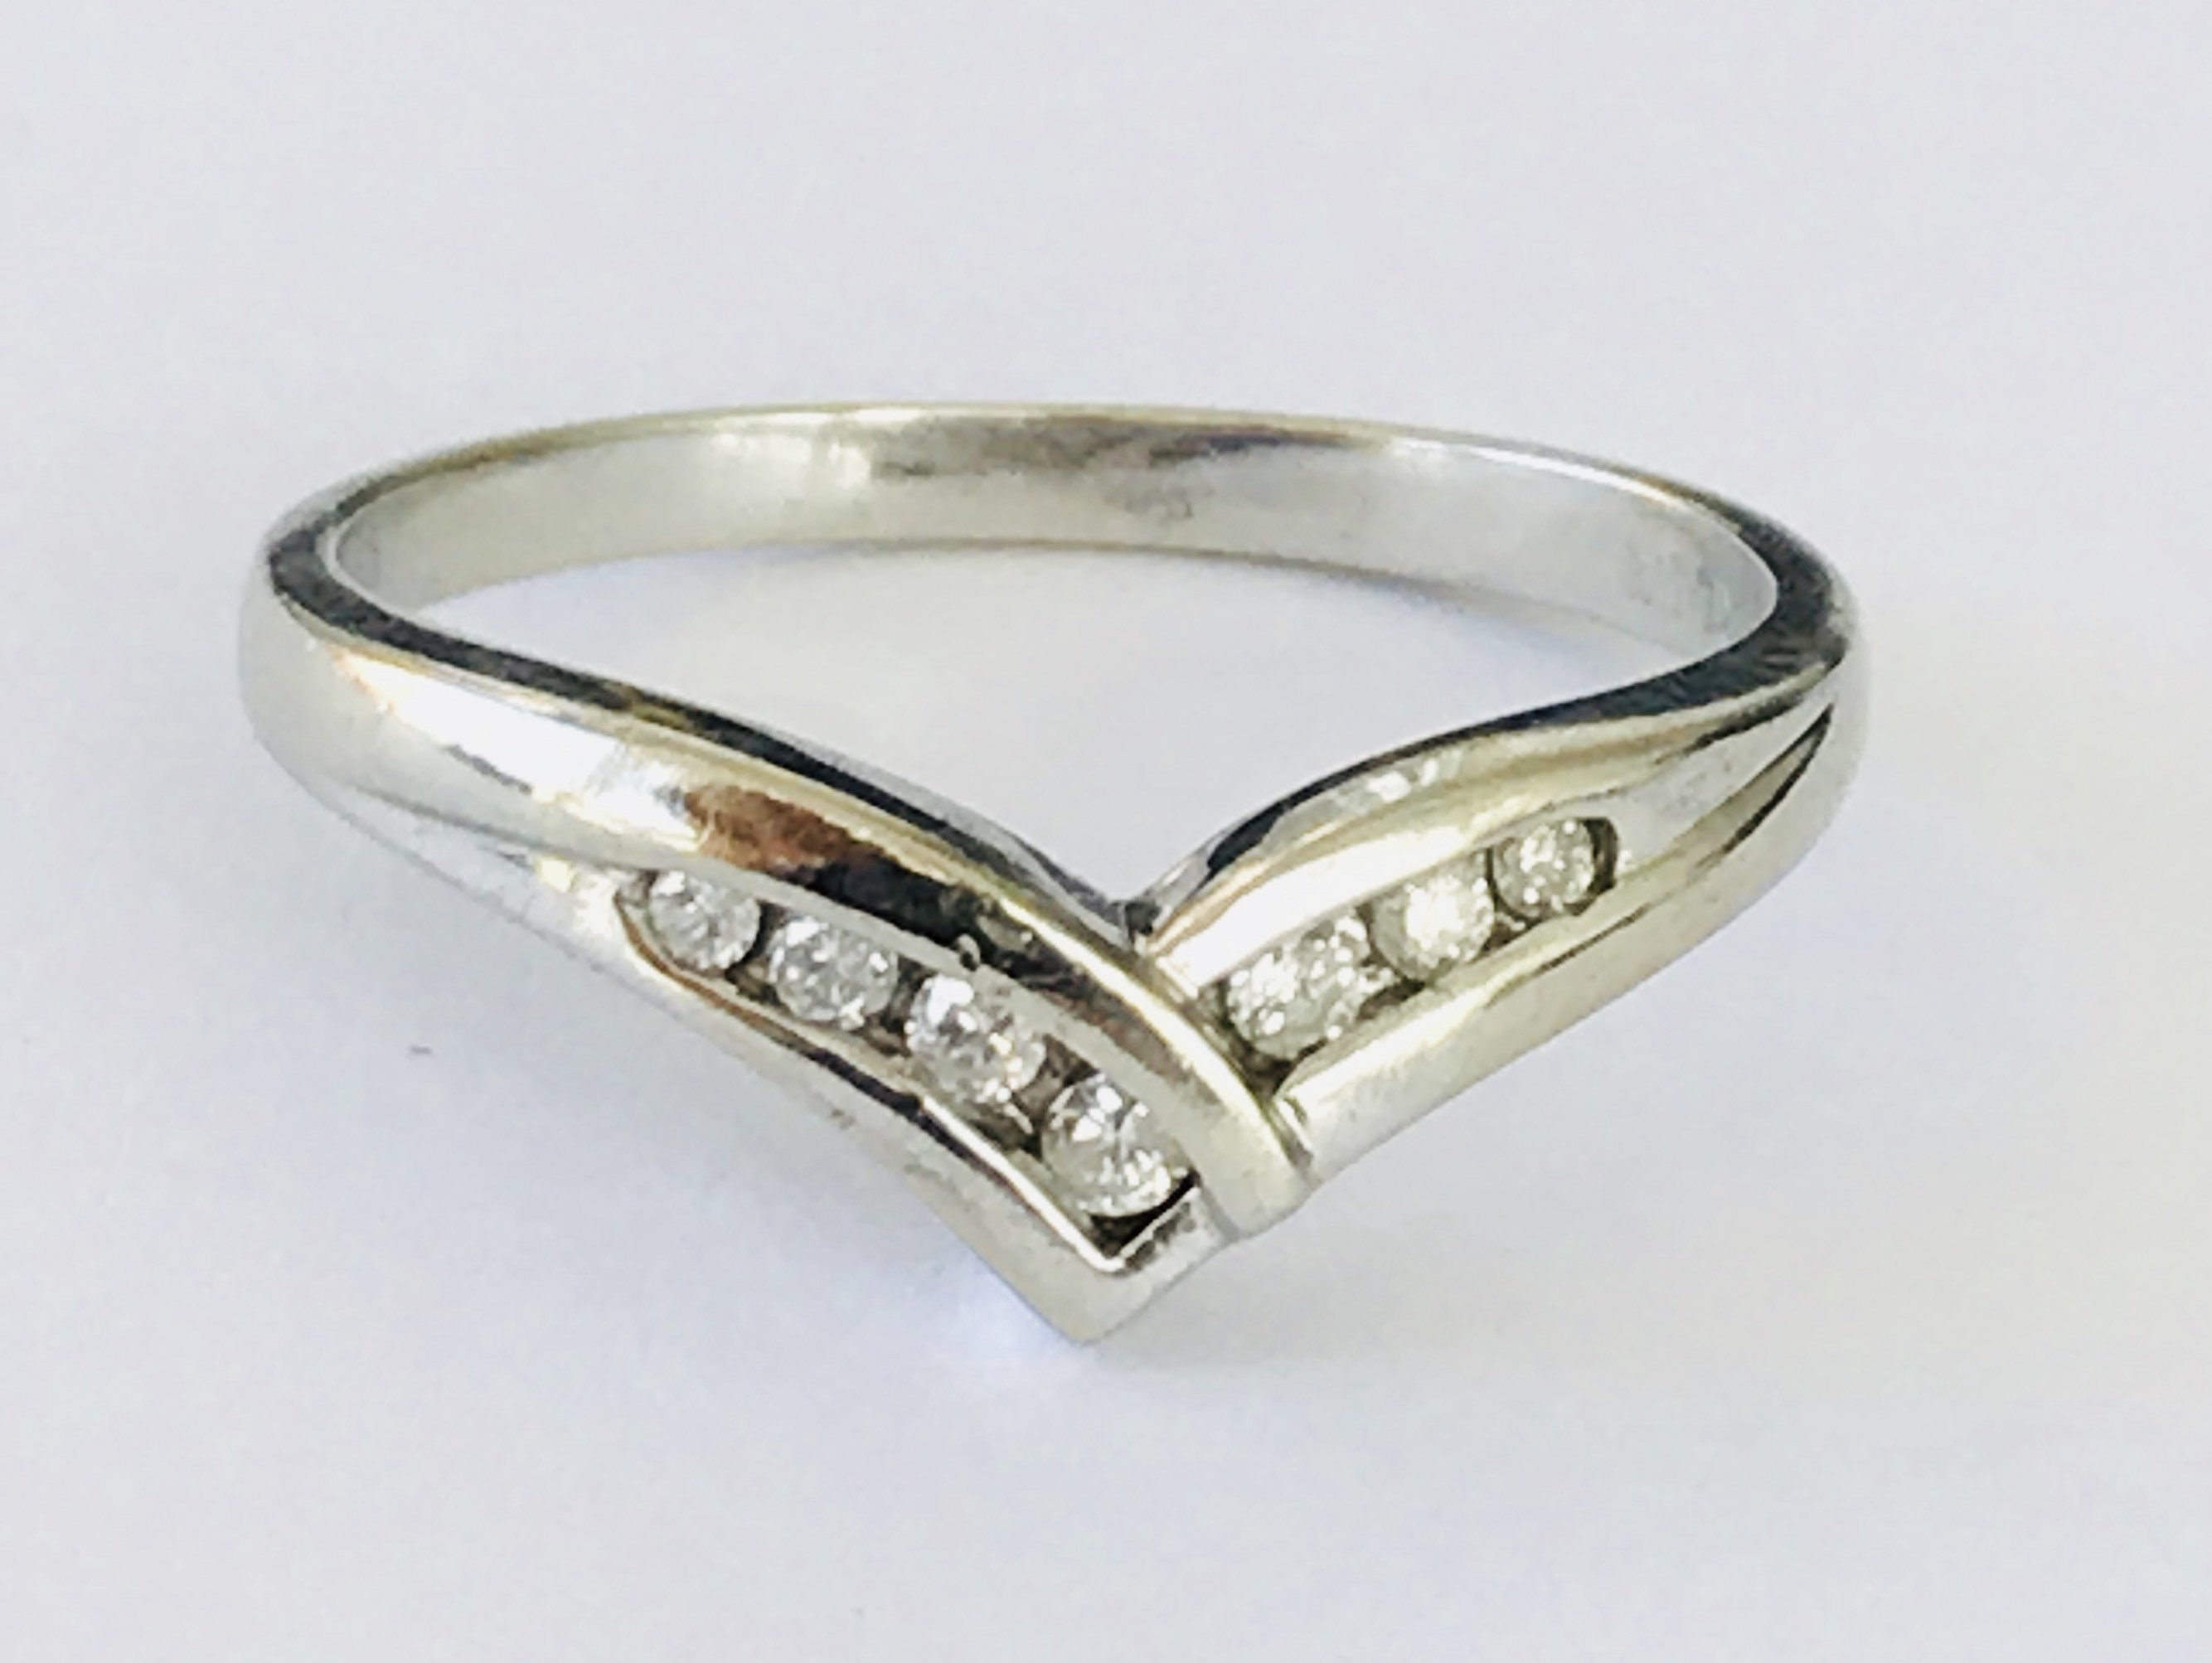 Super Sparkling Vintage 9ct White Gold Diamond Wishbone Ring – Fully Pertaining To Most Current Polished Wishbone Rings (View 14 of 25)